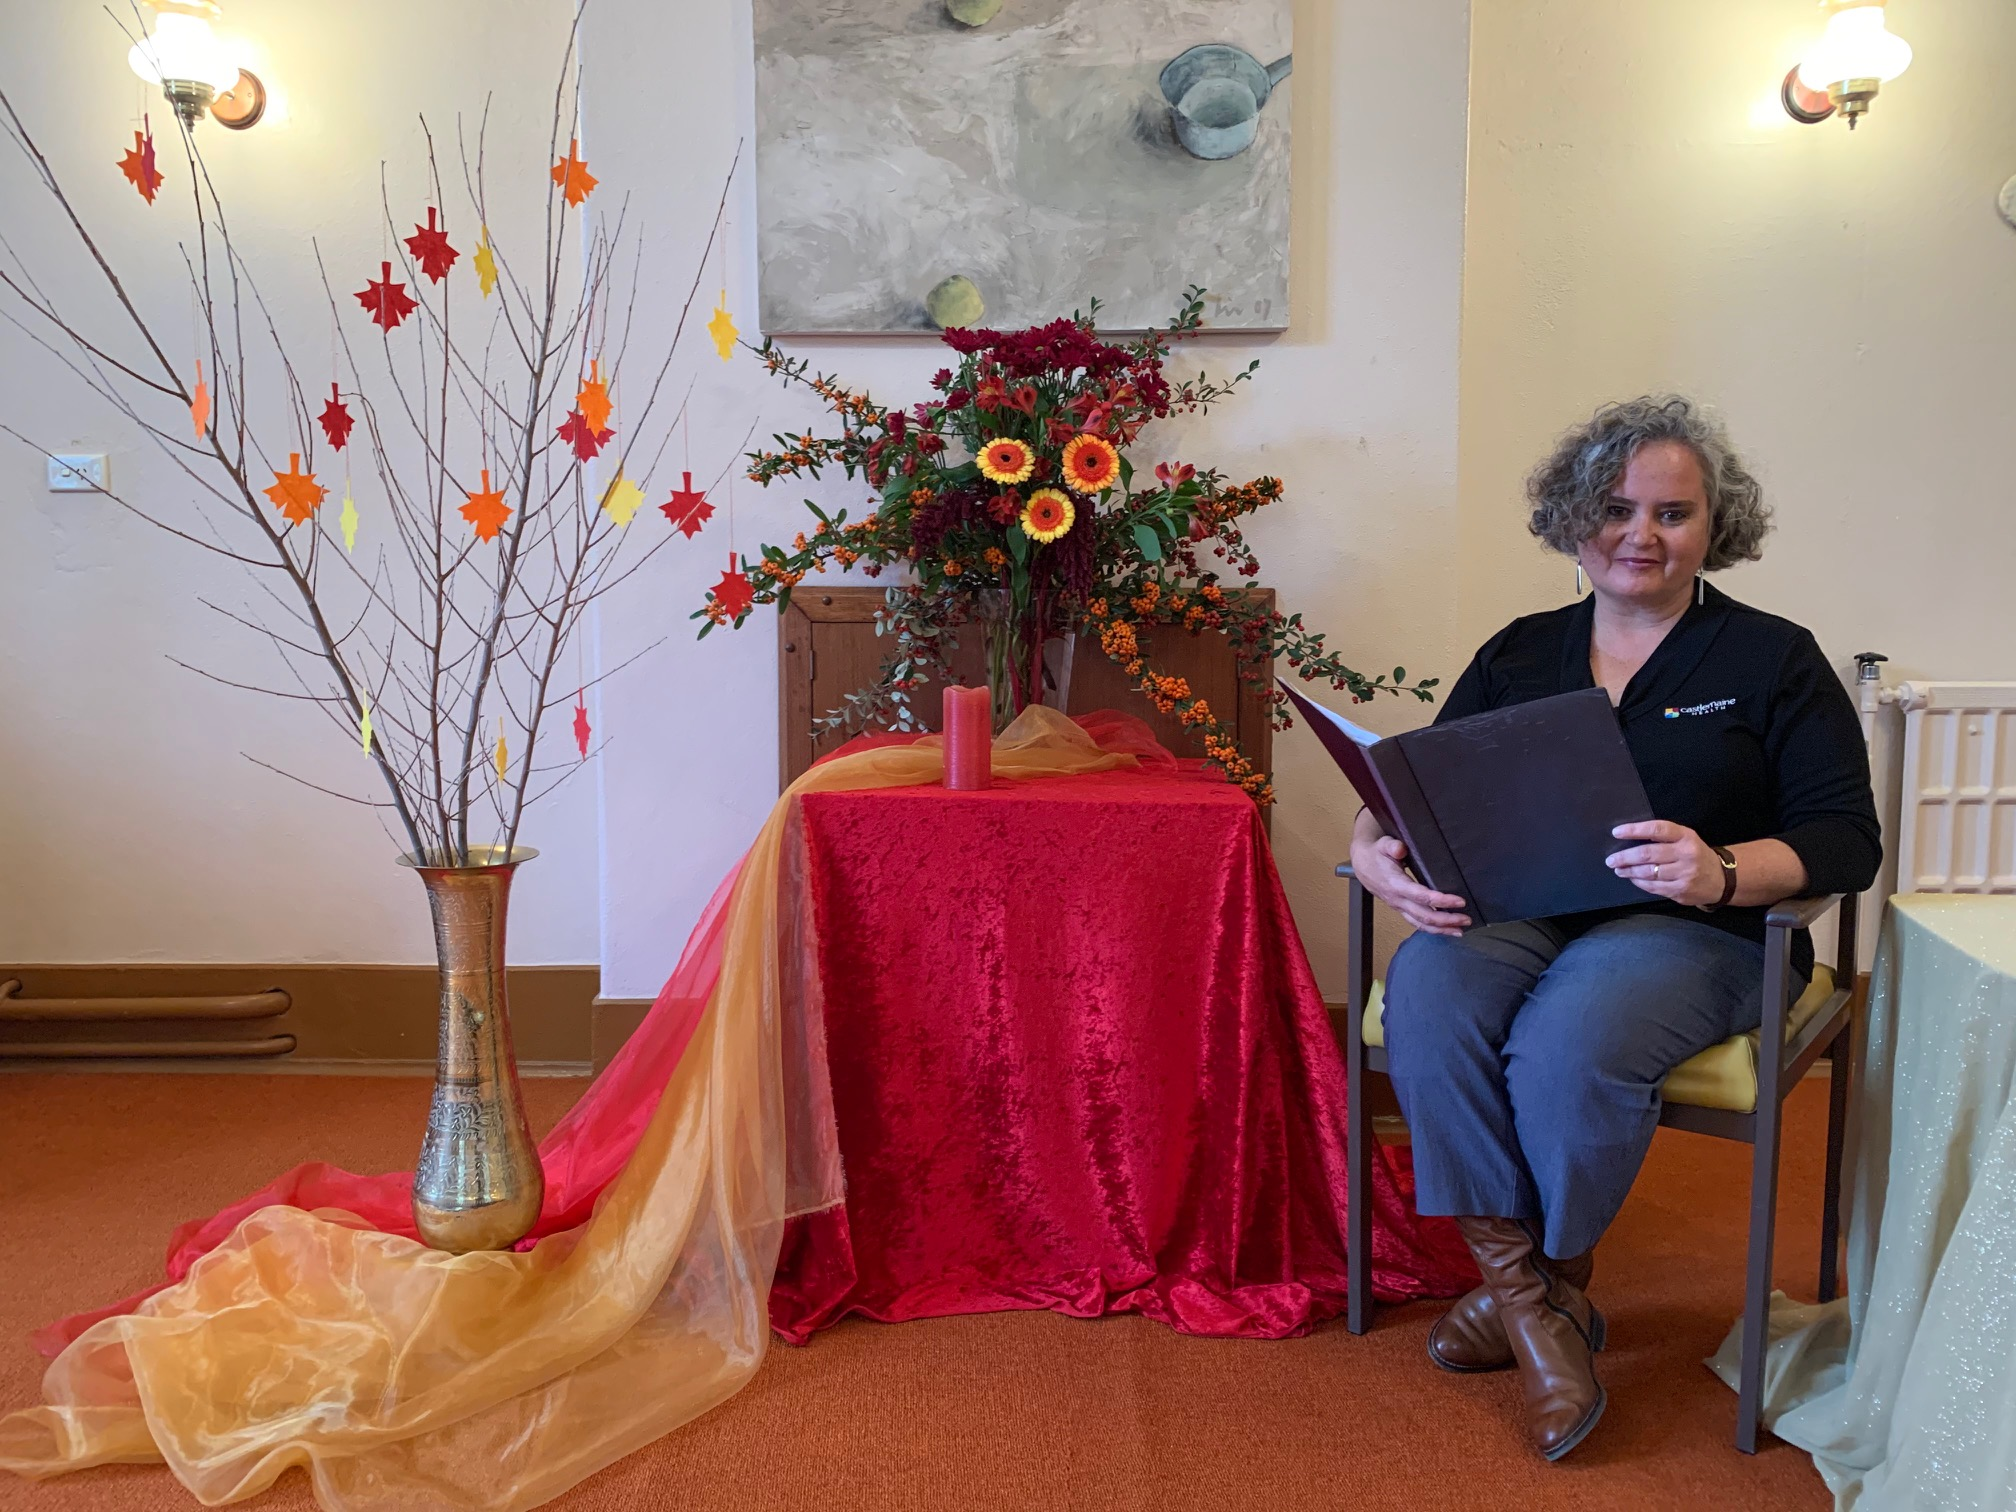 Pastoral Care Coordinator at Castlemaine Health Danni Moore invites local community members to view their online Remembrance Service of Reflections and Memories and pause and remember those beloved community members who have passed.